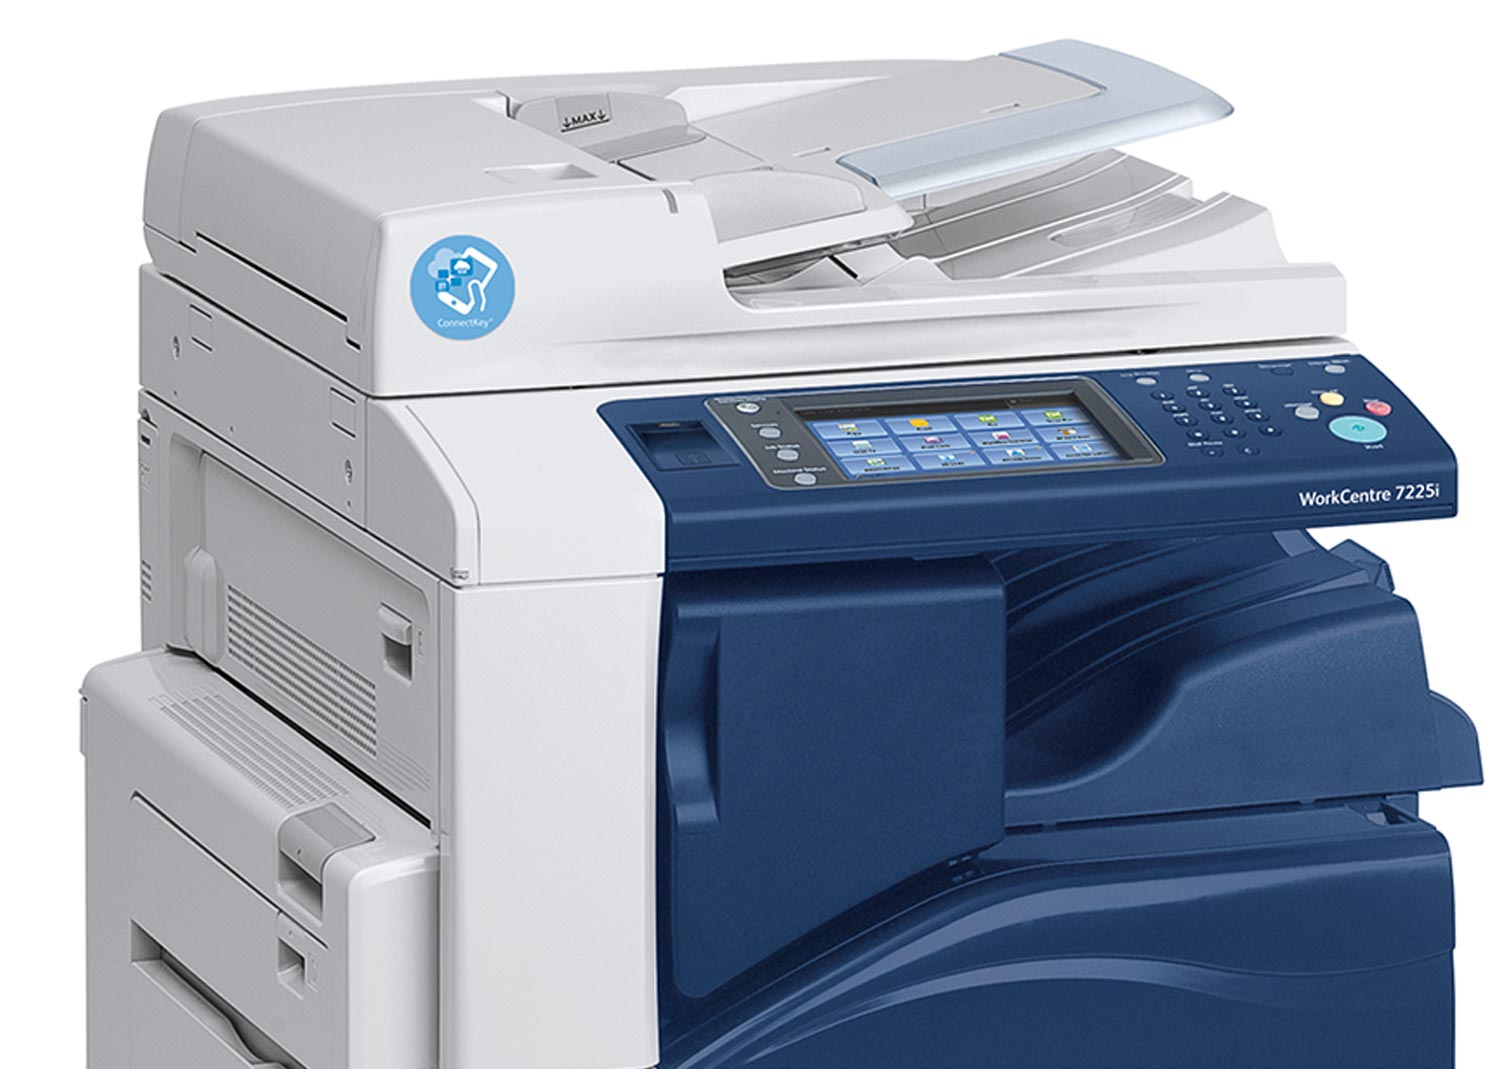 Xerox WorkCentre 7225s i